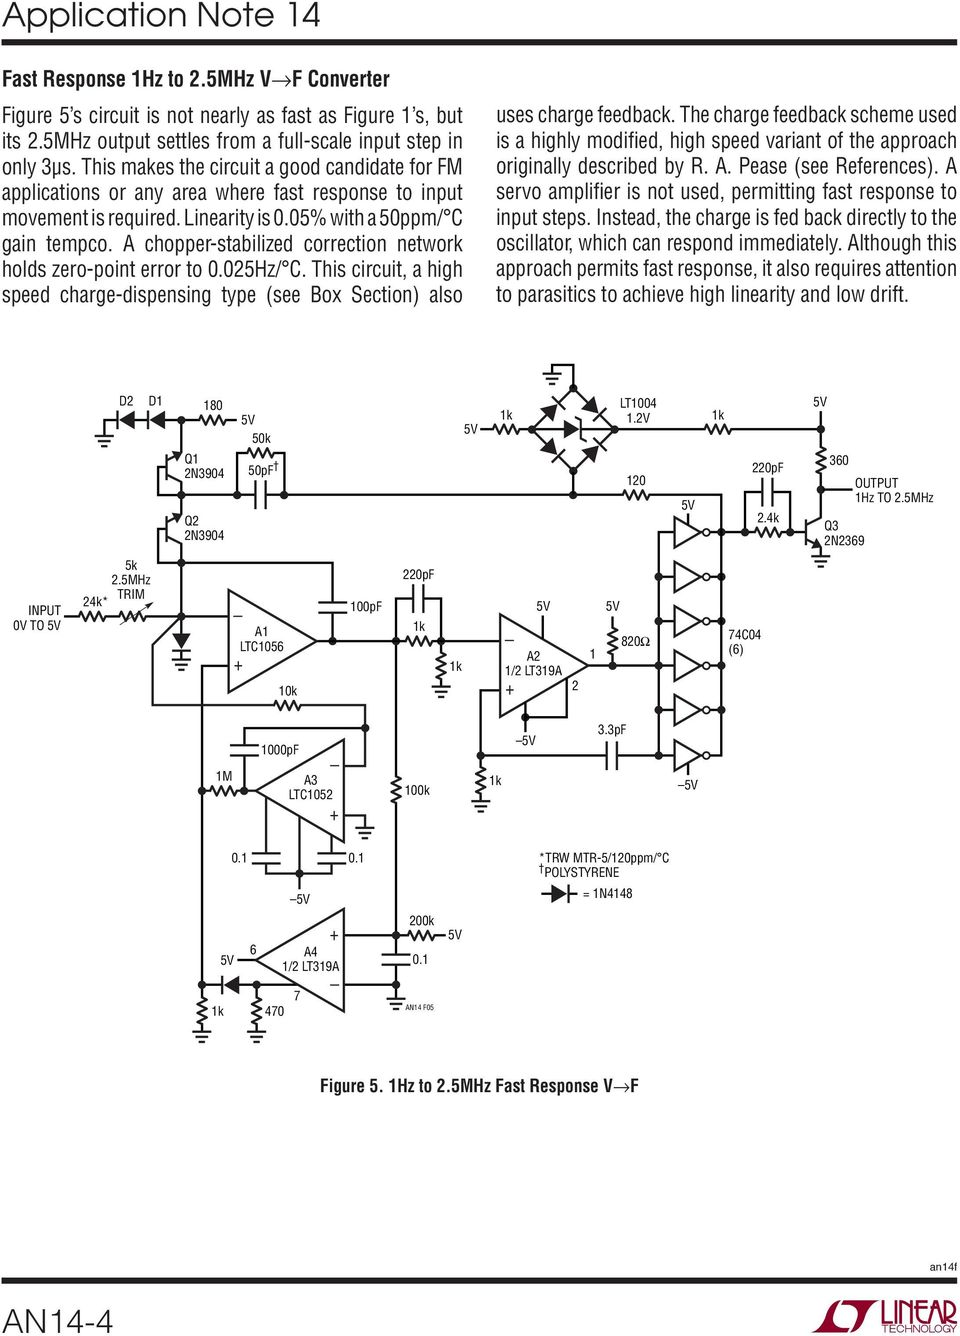 Designs For High Performance Voltage To Frequency Converters Pdf Quartz Crystal Sine Wave Oscillator Circuit Basiccircuit A Chopper Stabilized Correction Network Holds Zero Point Error 0025hz C